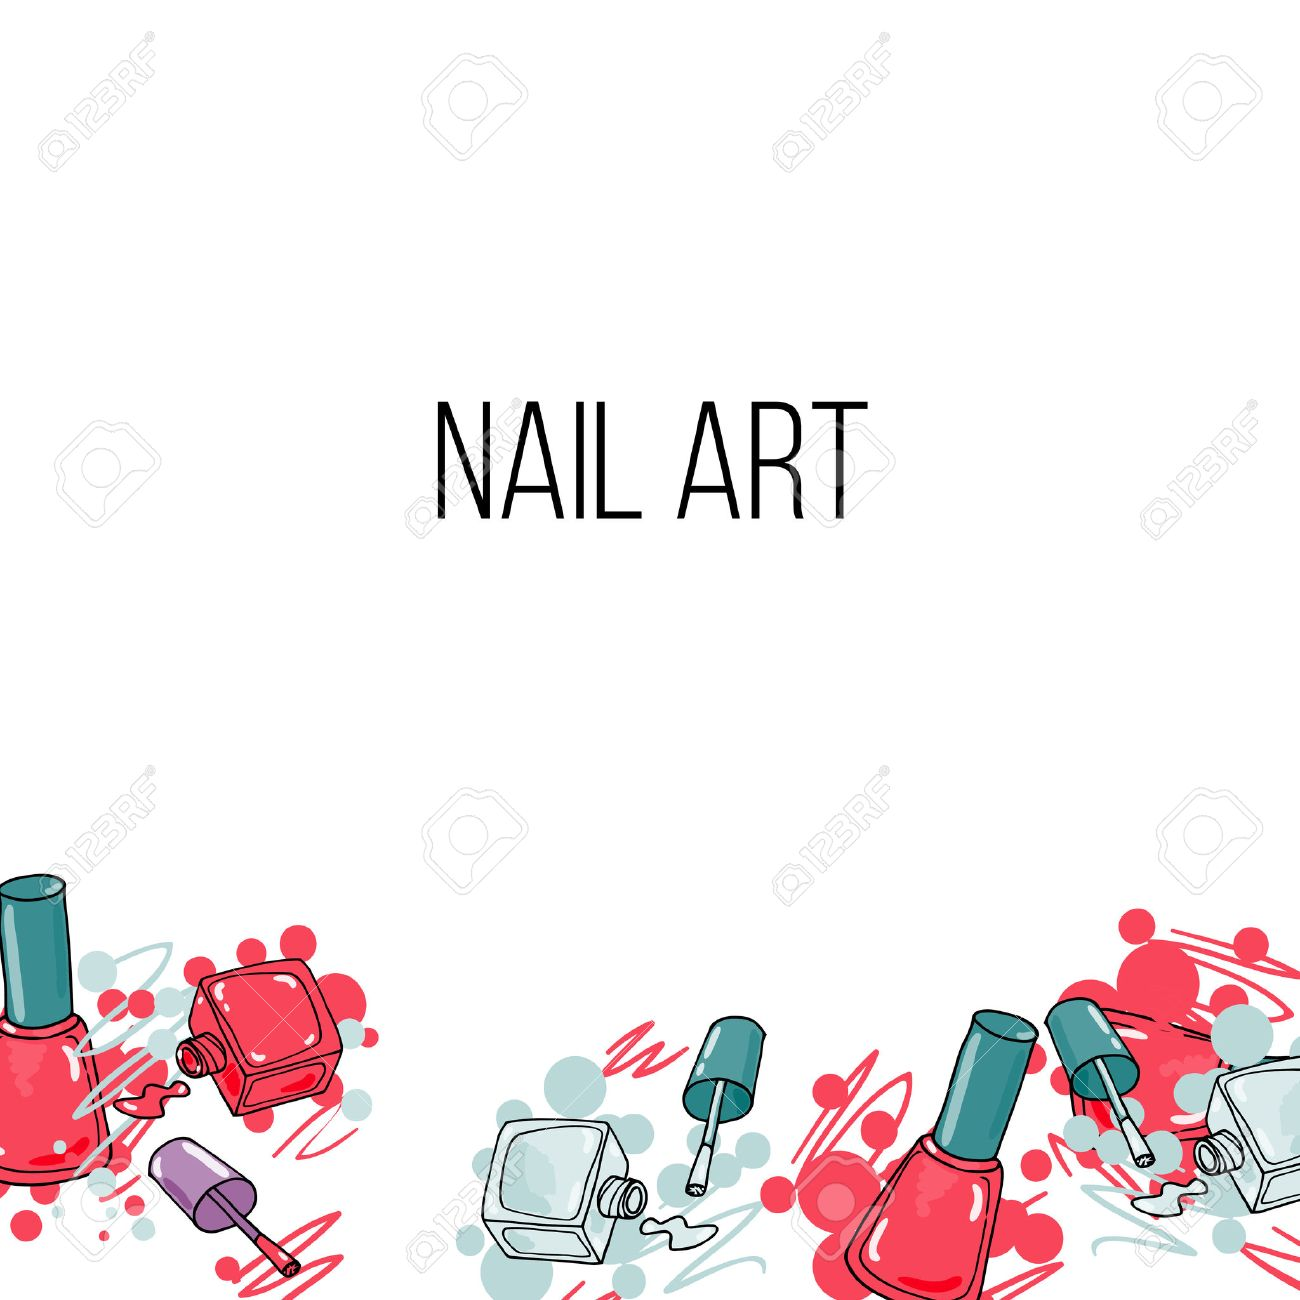 18808 nail art stock illustrations cliparts and royalty free vector nail lacquer bottlesand drops of nail polish on white background beauty background border and prinsesfo Choice Image